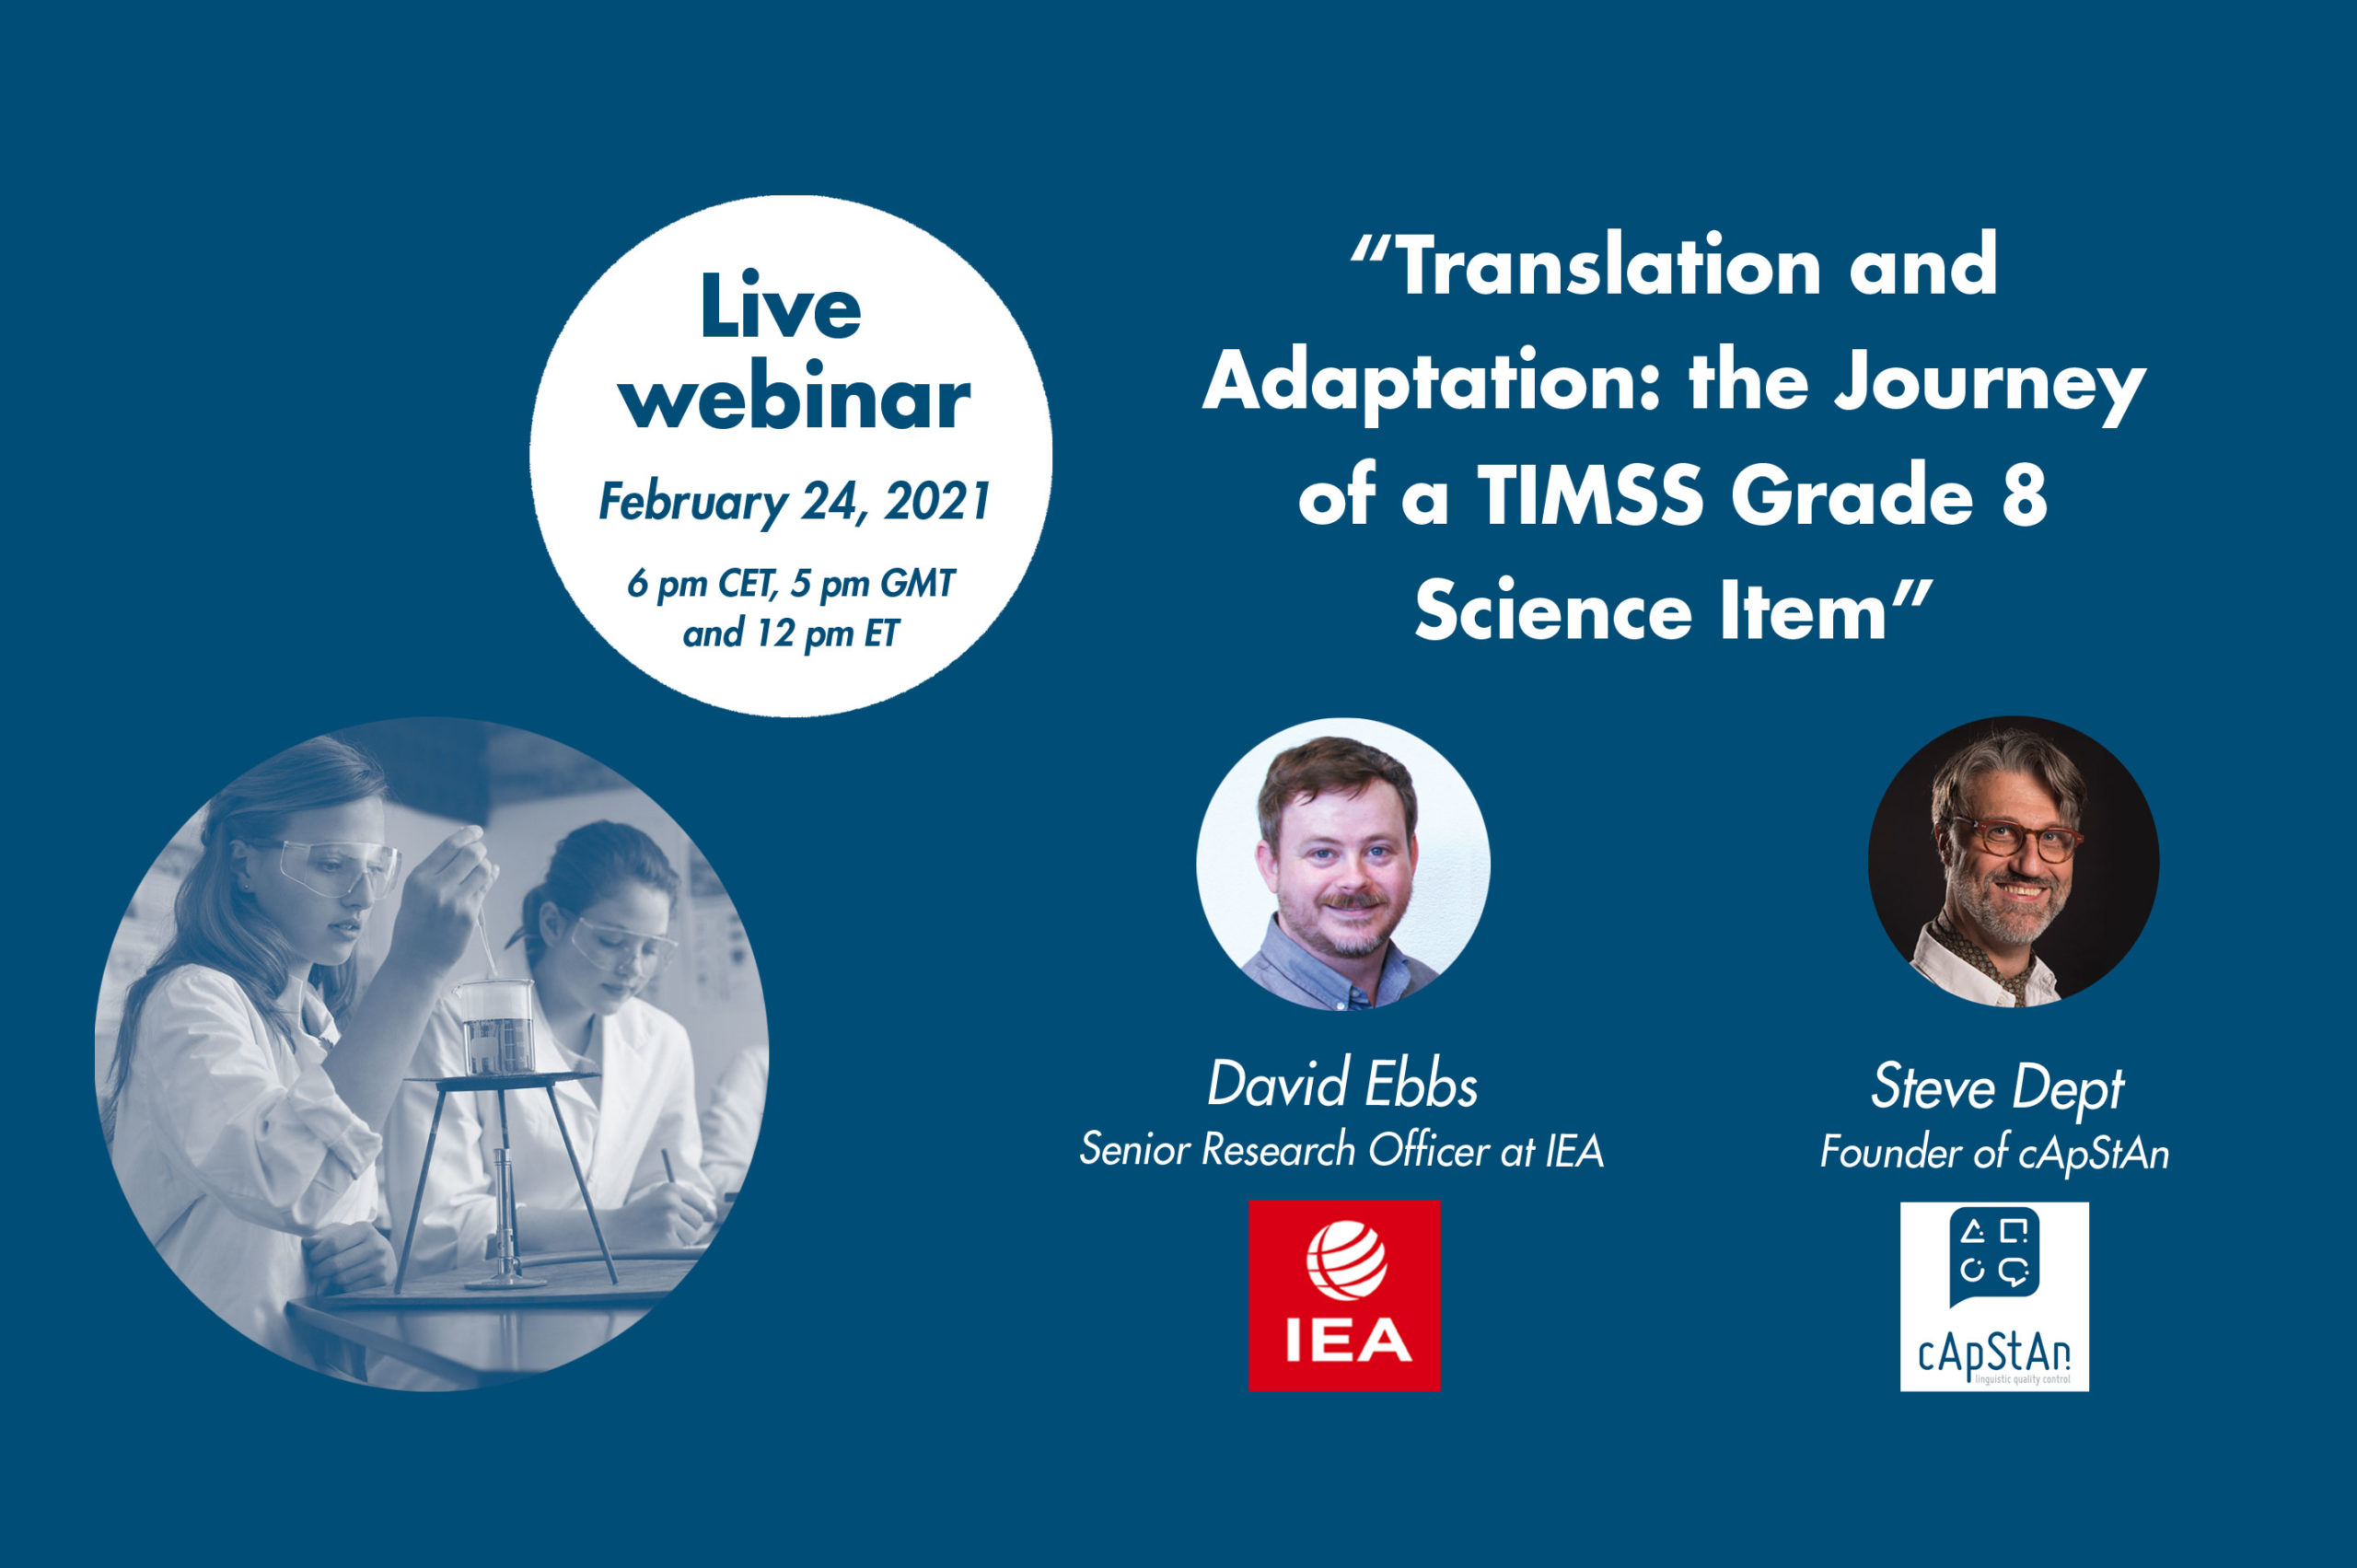 Translation and Adaptation: The Journey of a TIMSS Grade 8 Science Item